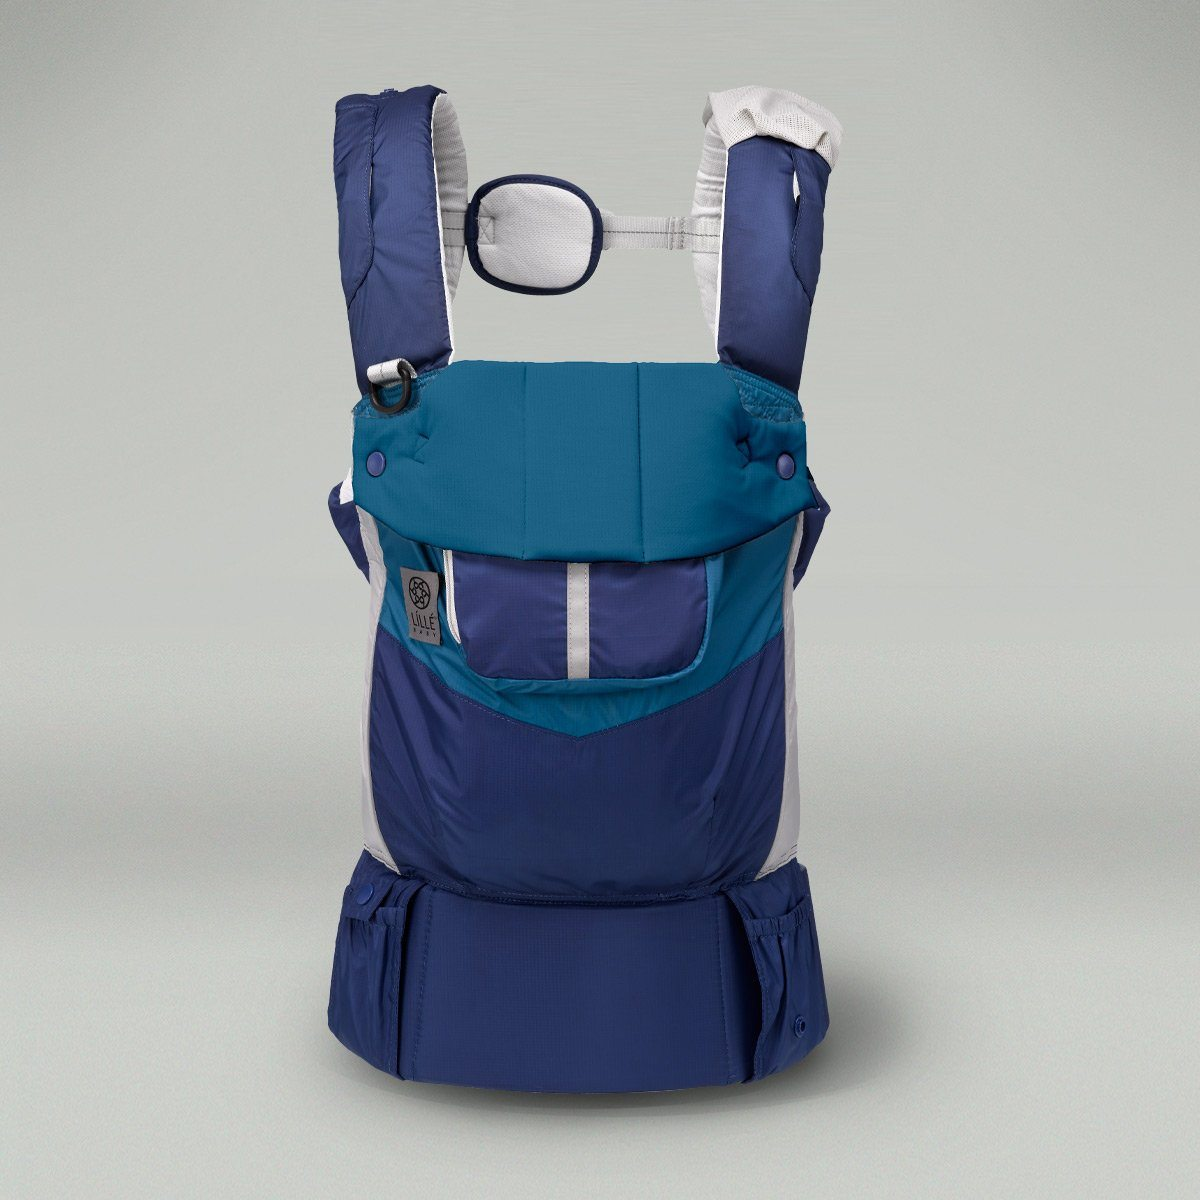 Celebrate Earth Day With Our Recycled Line Of Carriers: Pursuit Sport